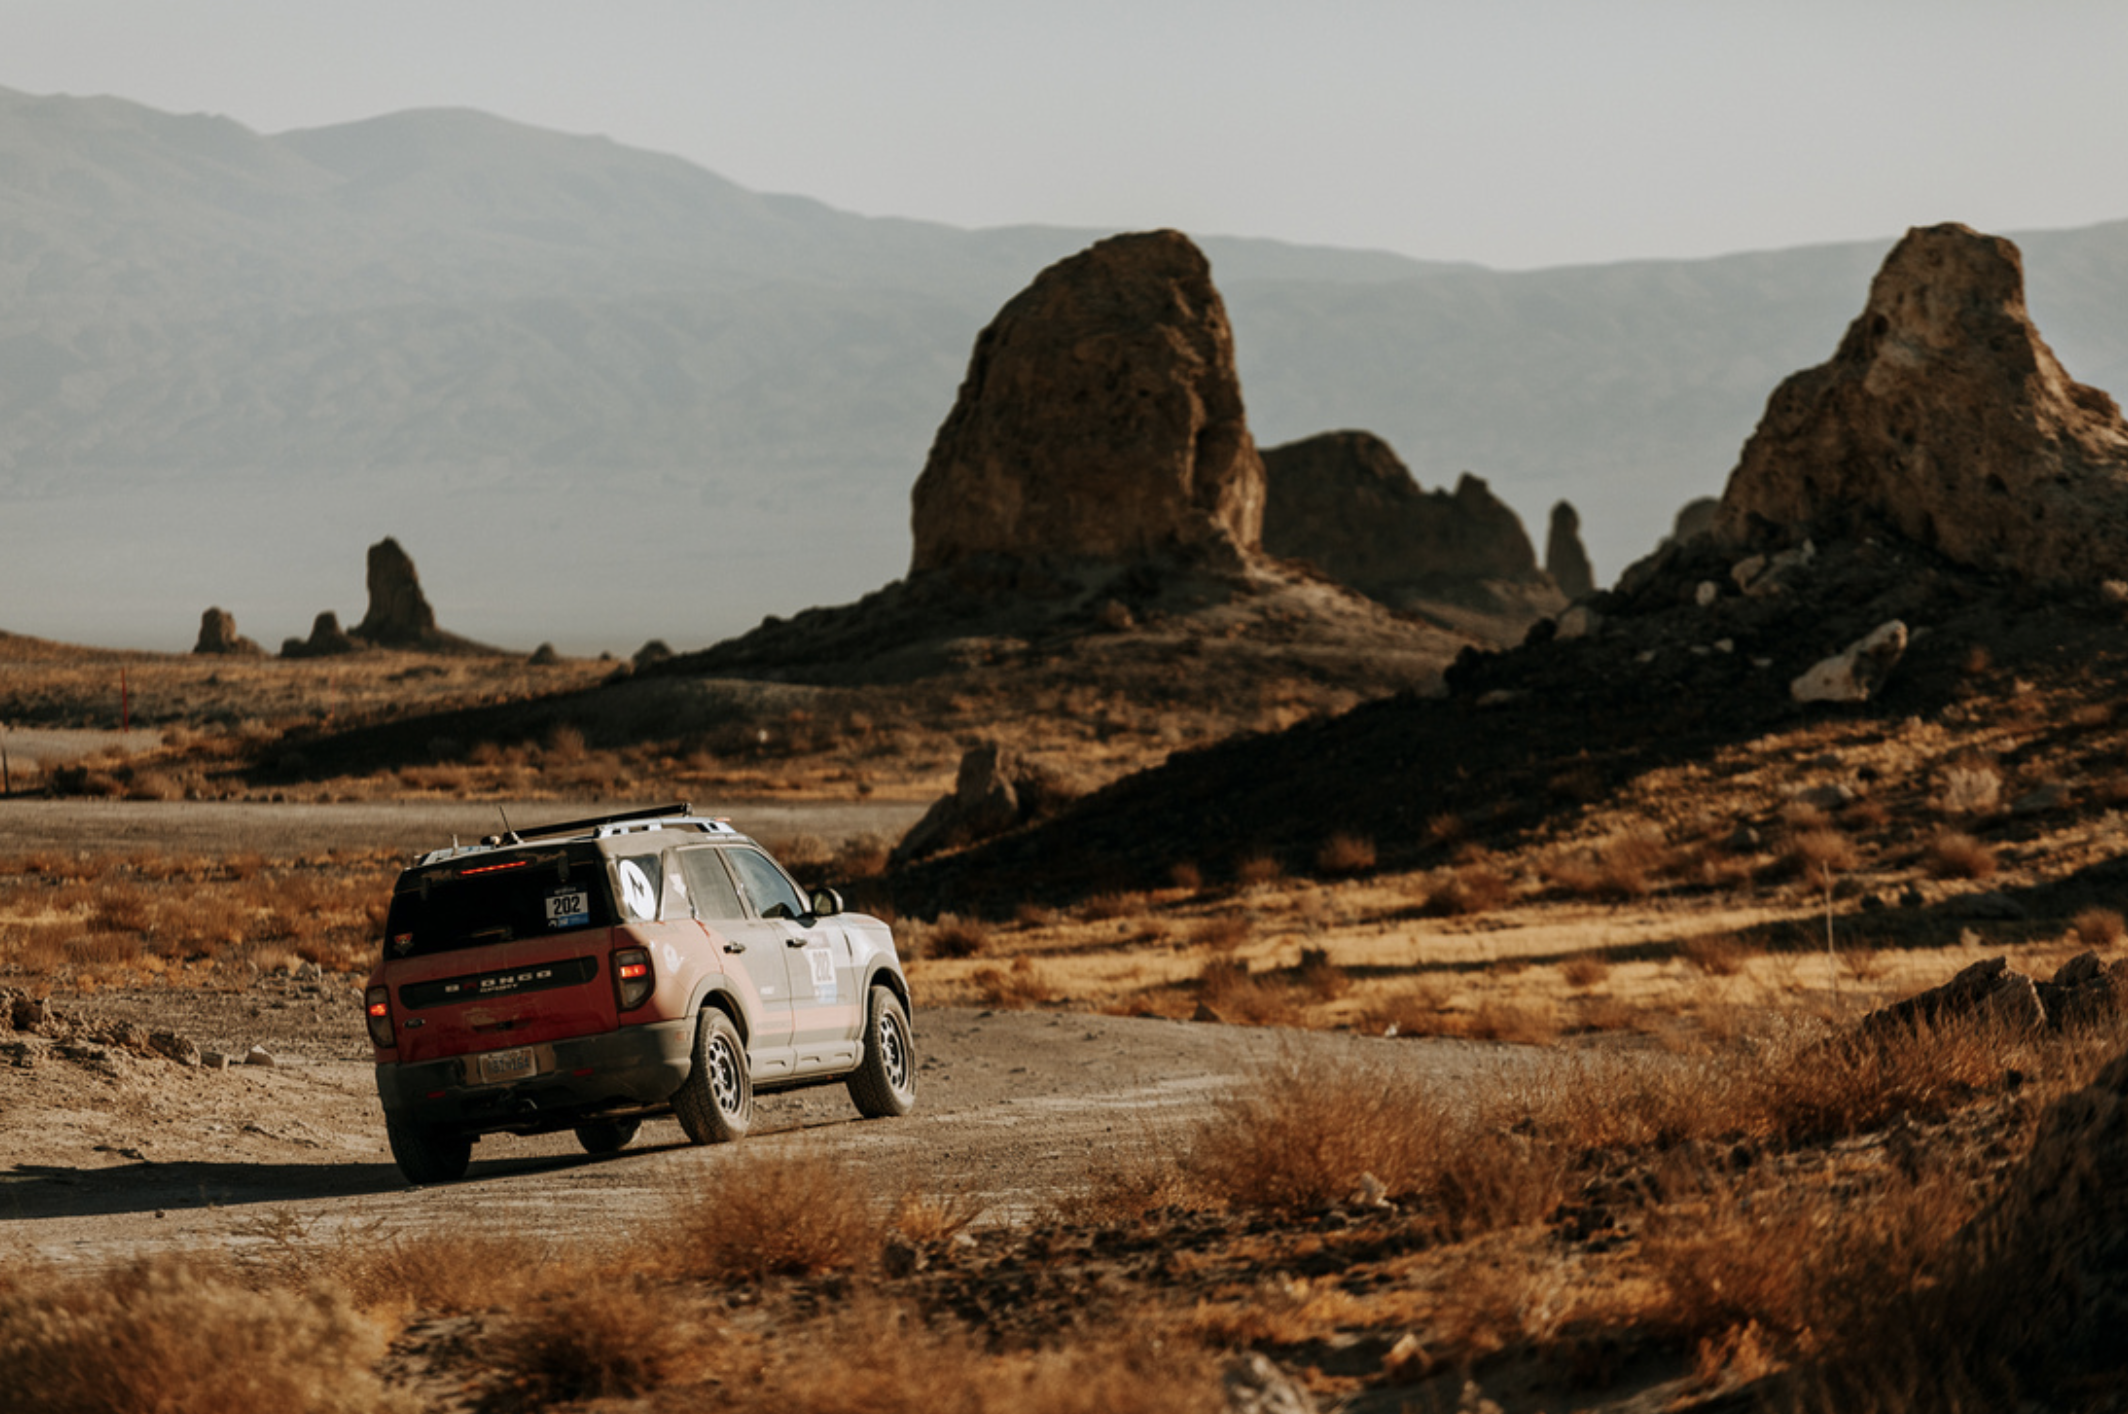 2020 REBELLE RALLY – BRONCO SPORT TEAMS CHALLENGE THEMSELVES ON STUNNING AND TOUGH TERRAIN